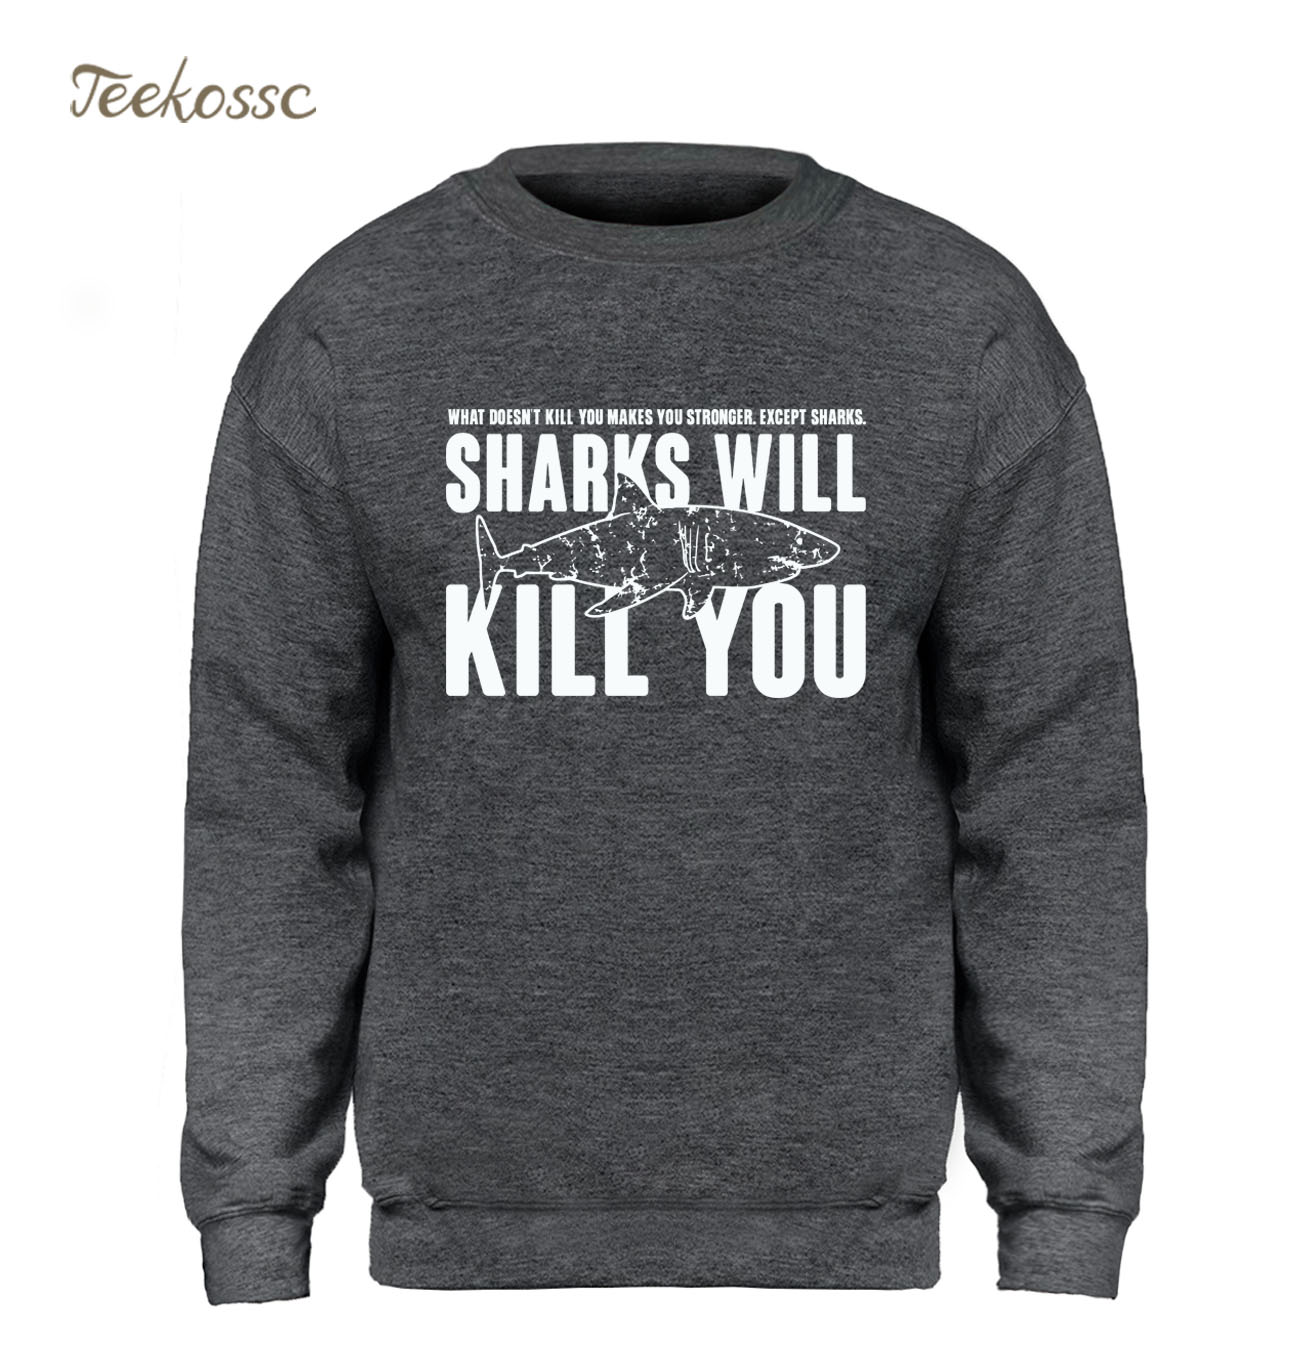 Sharks Will Kill You Hoodie Men Long Sleeve Sweatshirt Graphics Design Sweatshirts Winter Autumn Fleece Warm Brand Sportswear